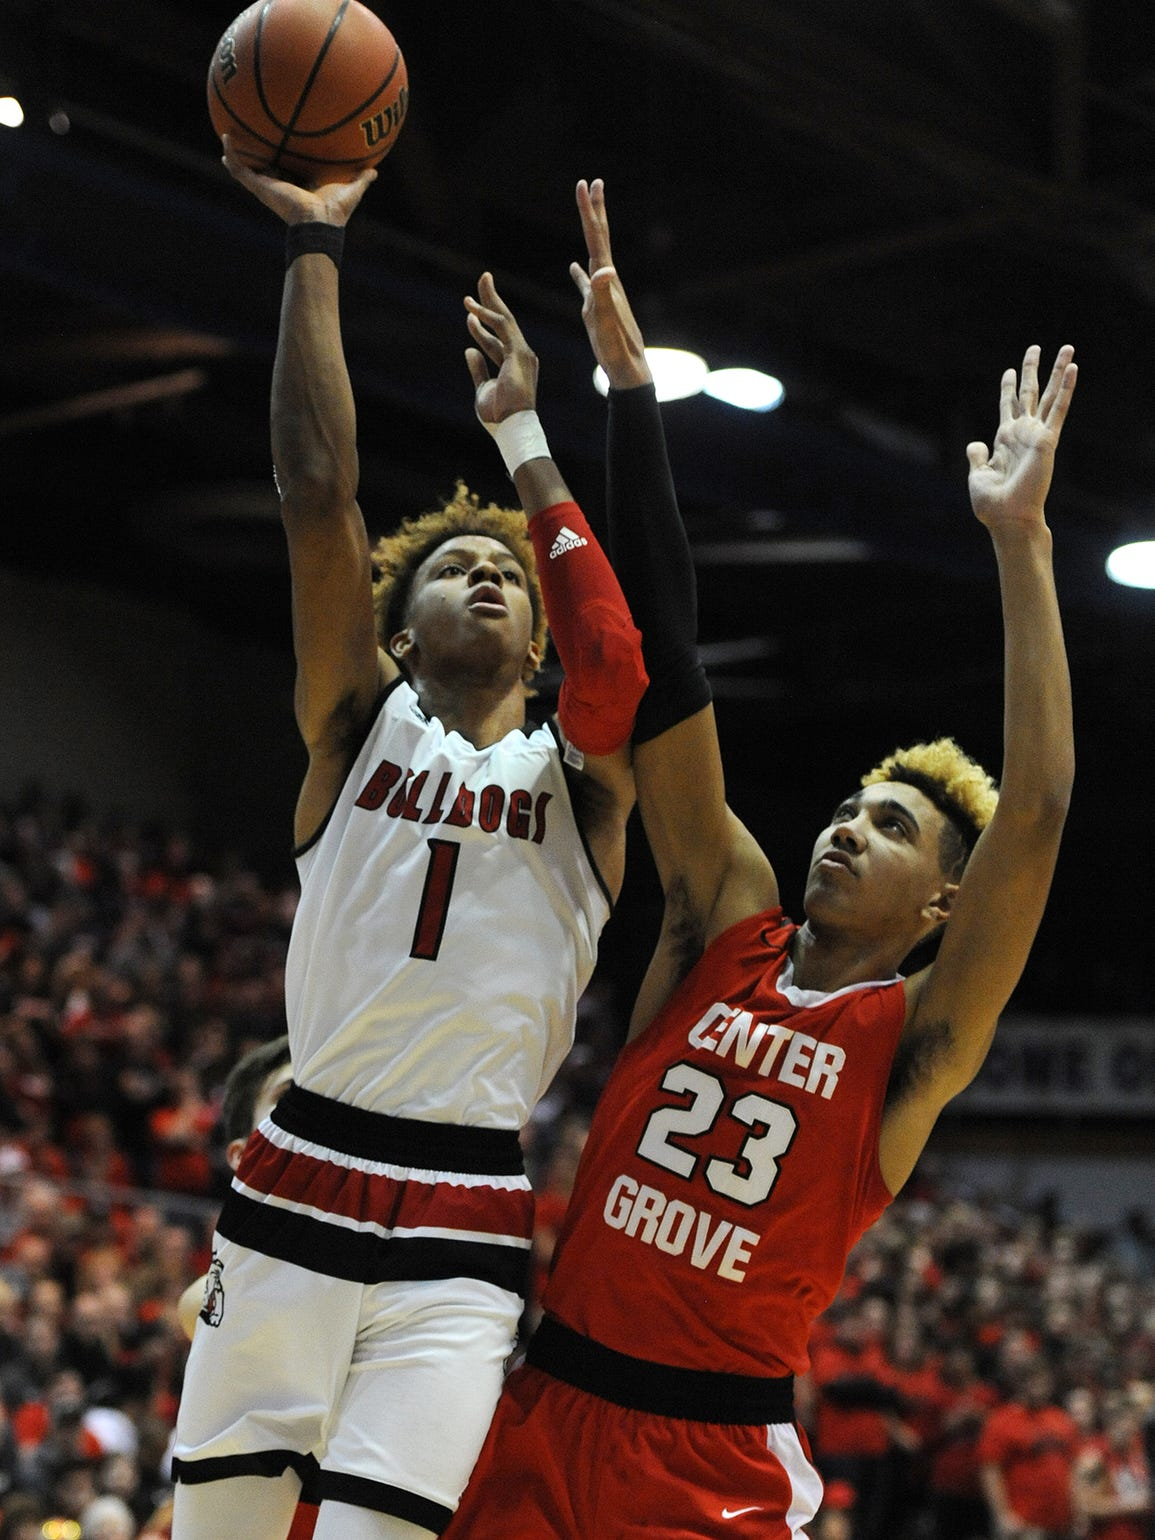 New Albany's Romeo Langford (left) shoots against Center